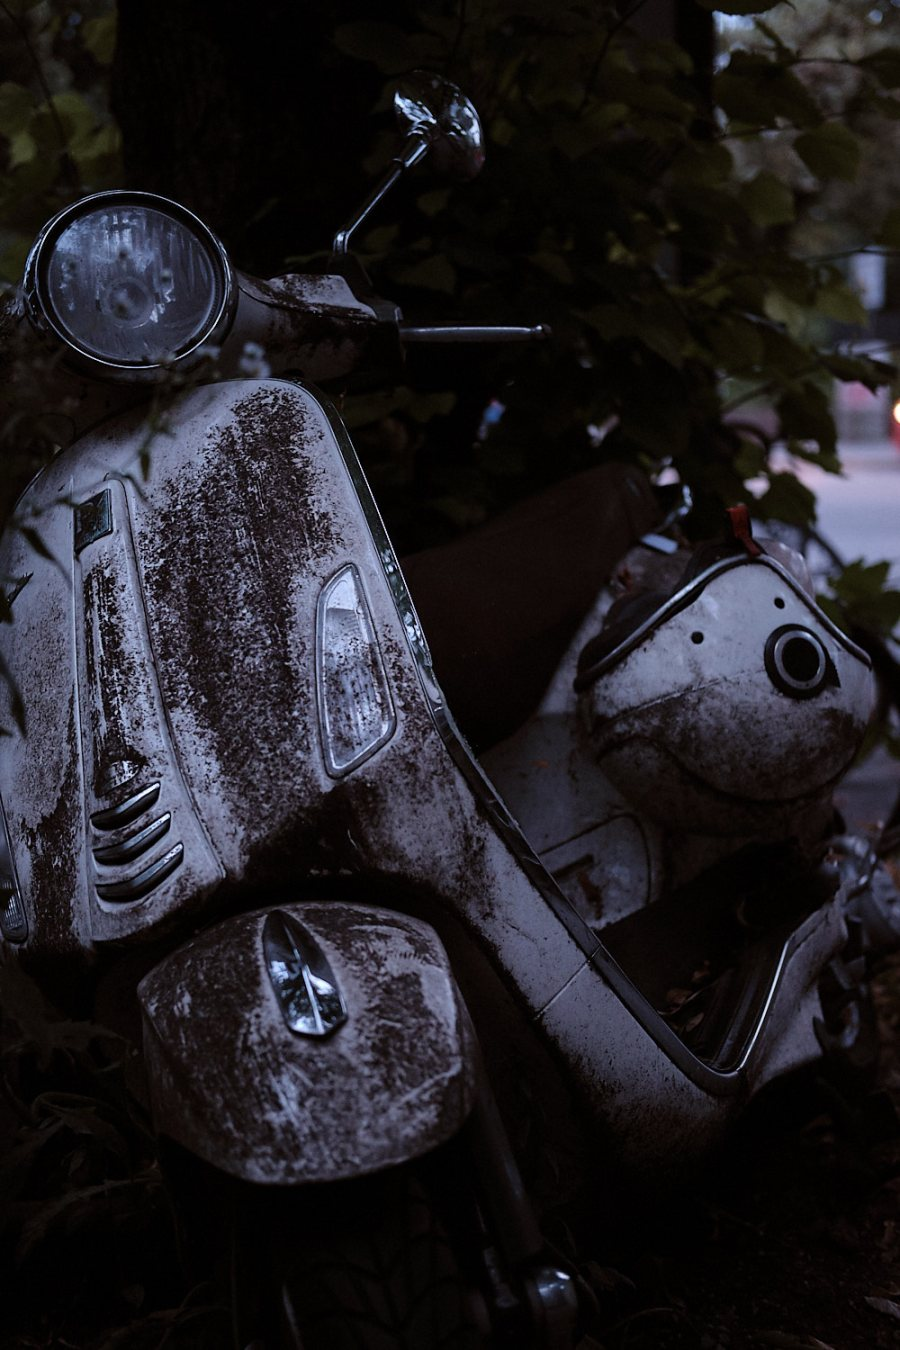 Disregarded and abandoned Piaggio Vespa in the streets of Munich, Germany. The legacy of the outstanding ingenuity of the Italian engineers of the 20th century.